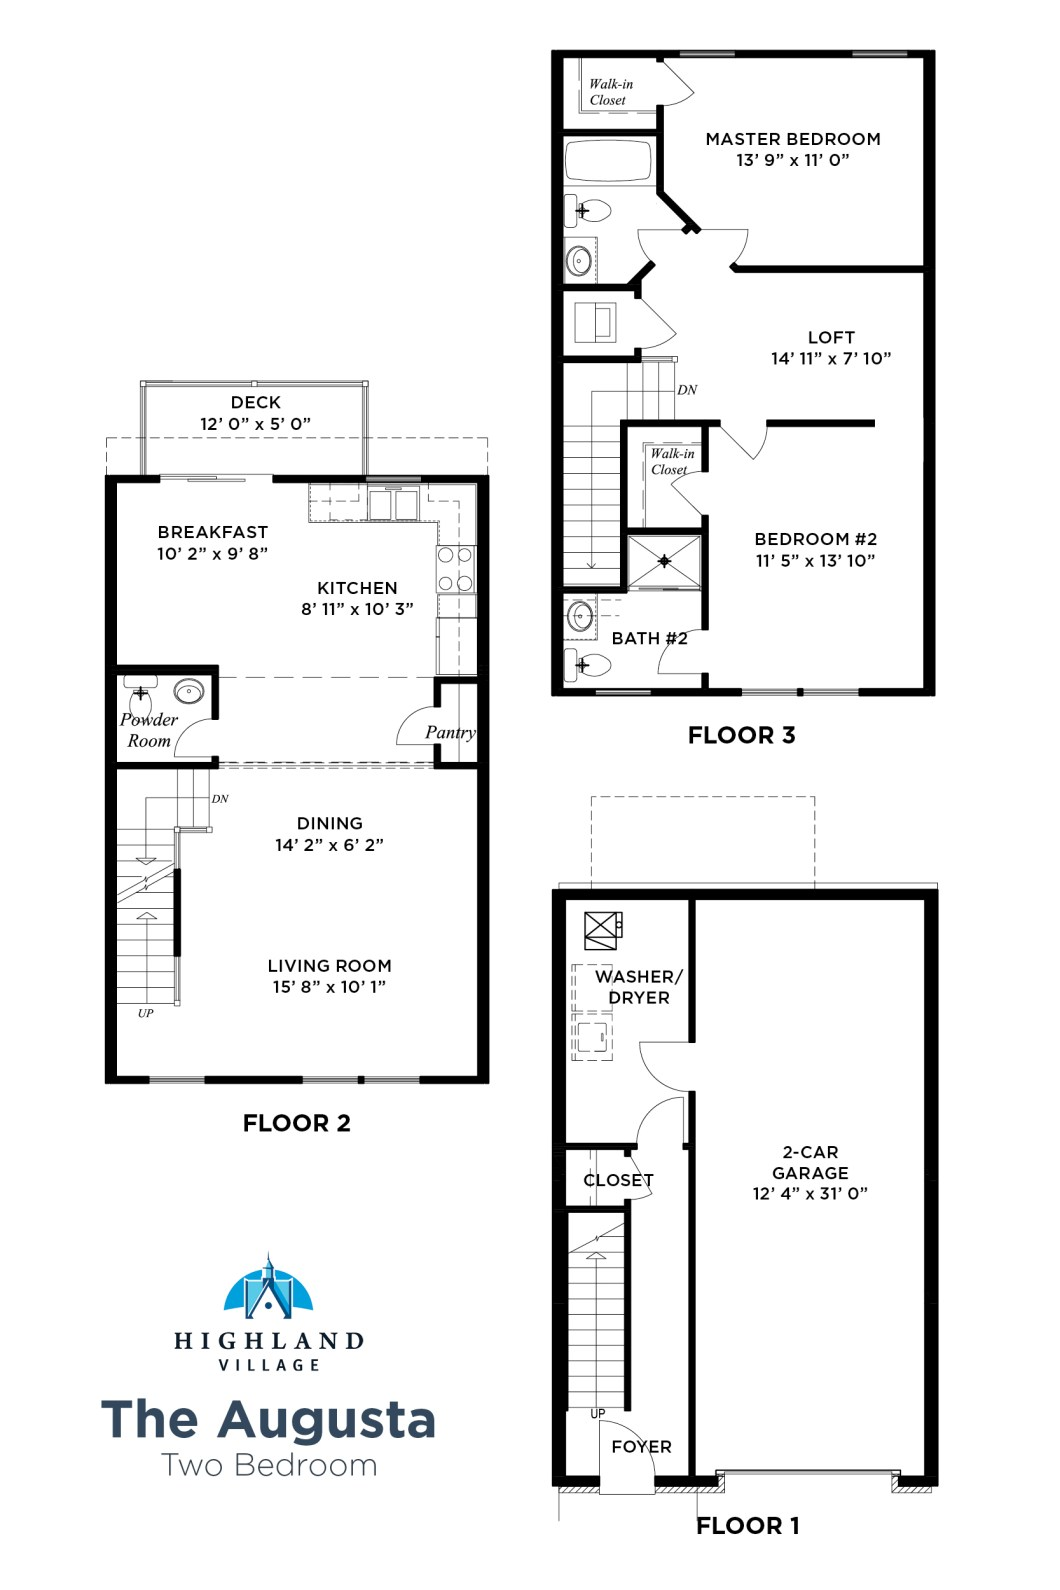 3 Bedroom Townhouse Floor Plans With Garage